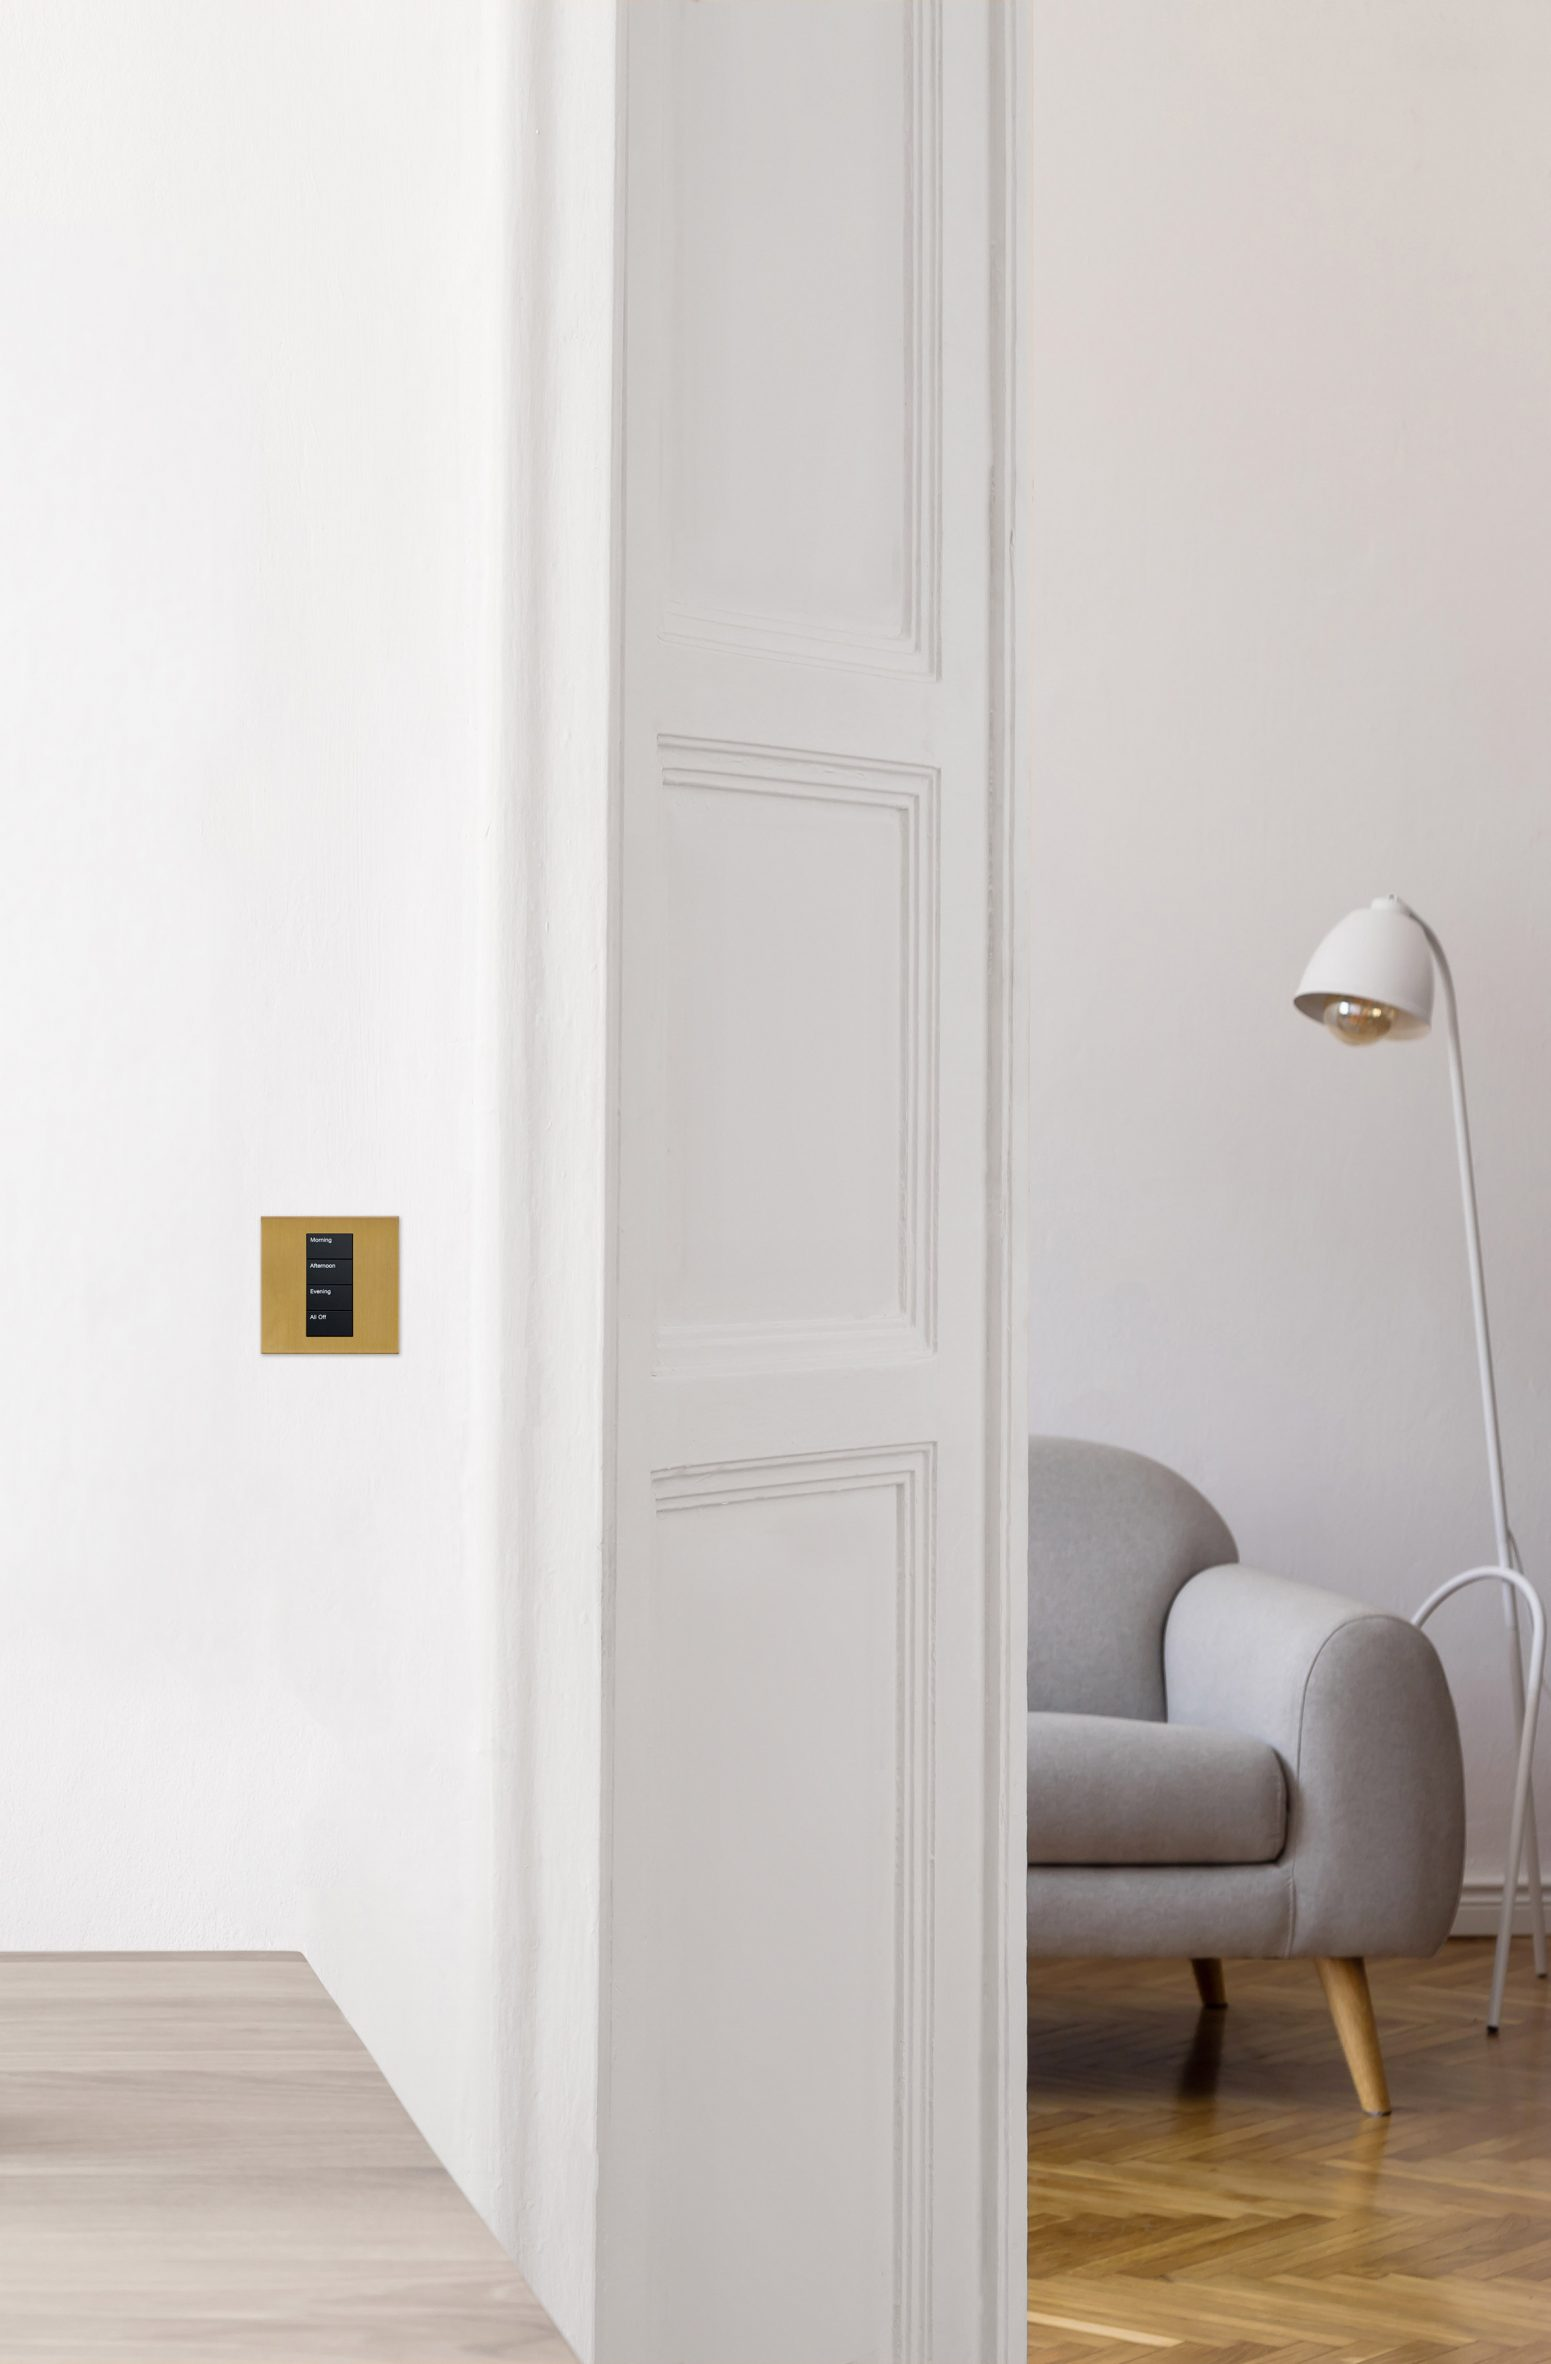 gold light control in a neutral, white interior